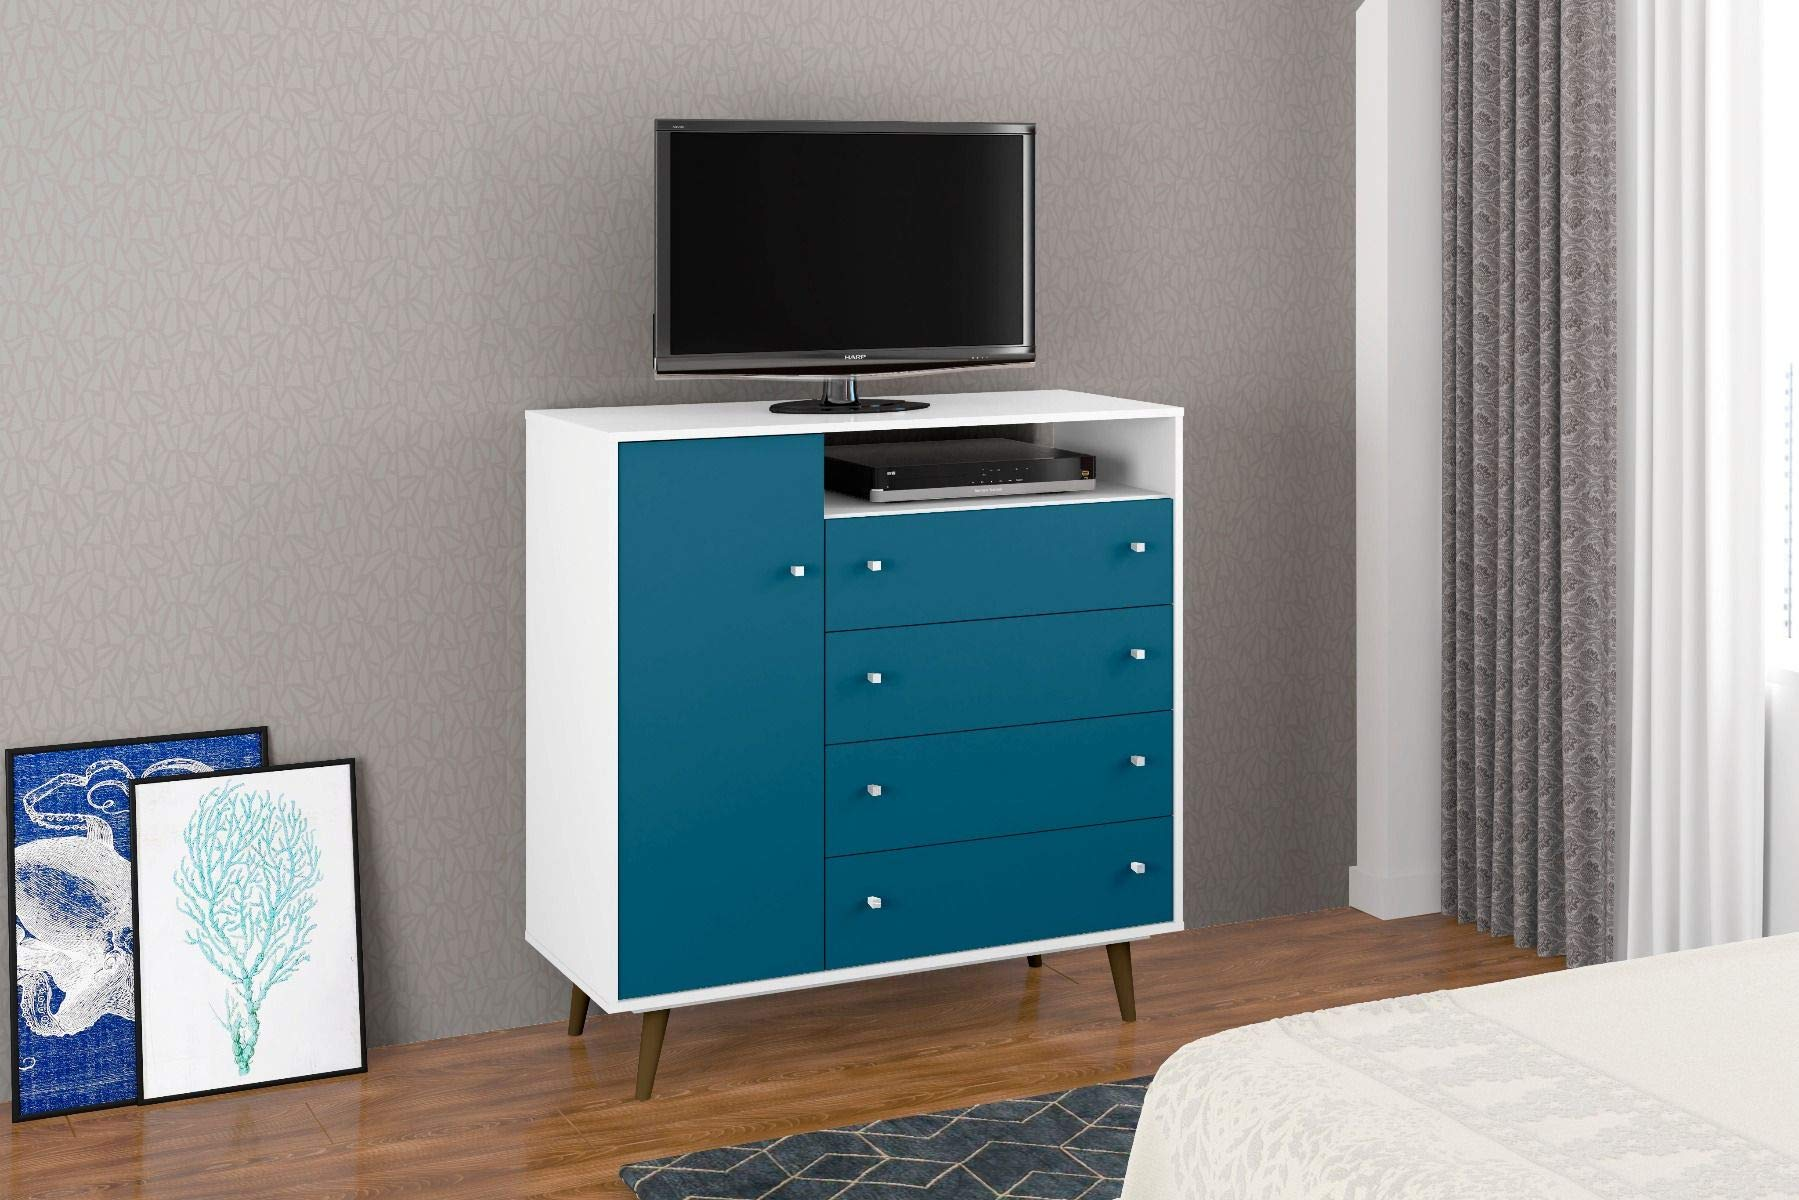 Mid Century Modern Sideboard Dresser Chest with 4 Drawers 4 Shelves 1 Door and Solid Wood Splayed Legs - Includes Modhaus Living Pen (White and Aqua Blue) -  - dressers-bedroom-furniture, bedroom-furniture, bedroom - 71cjMc4B5XL -